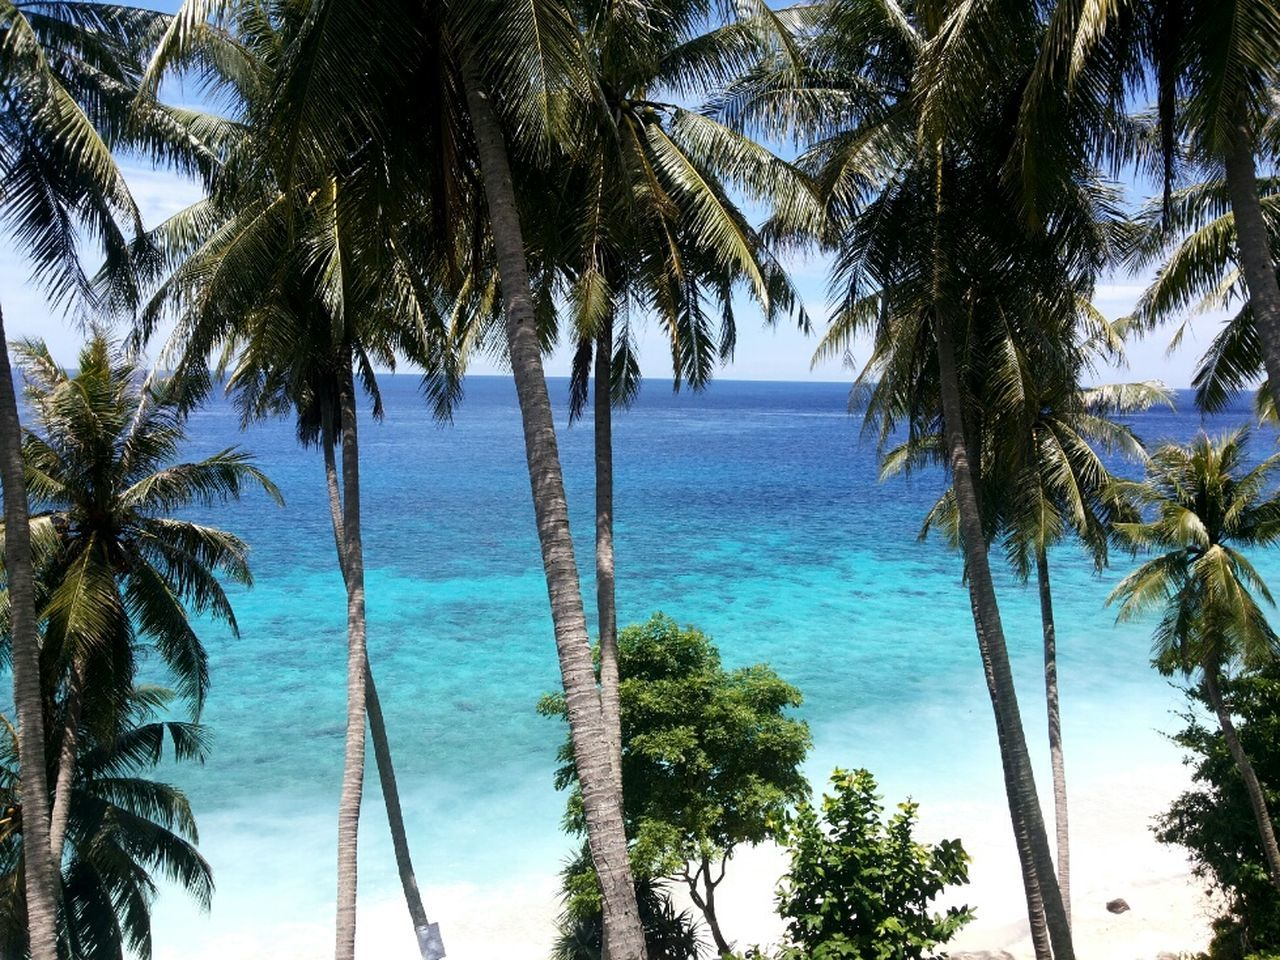 Life is better at the beach Thebodyshop Qoutes Summer Beachlife Sea And Sky Walktoexplore Aceh Indonesia Beach View Holiday Scenery PrivateBeach Palmtree Landscape Nature Photography Blue Water Green Nature Wonderfulindonesia Visitindonesia Aceh Tourism